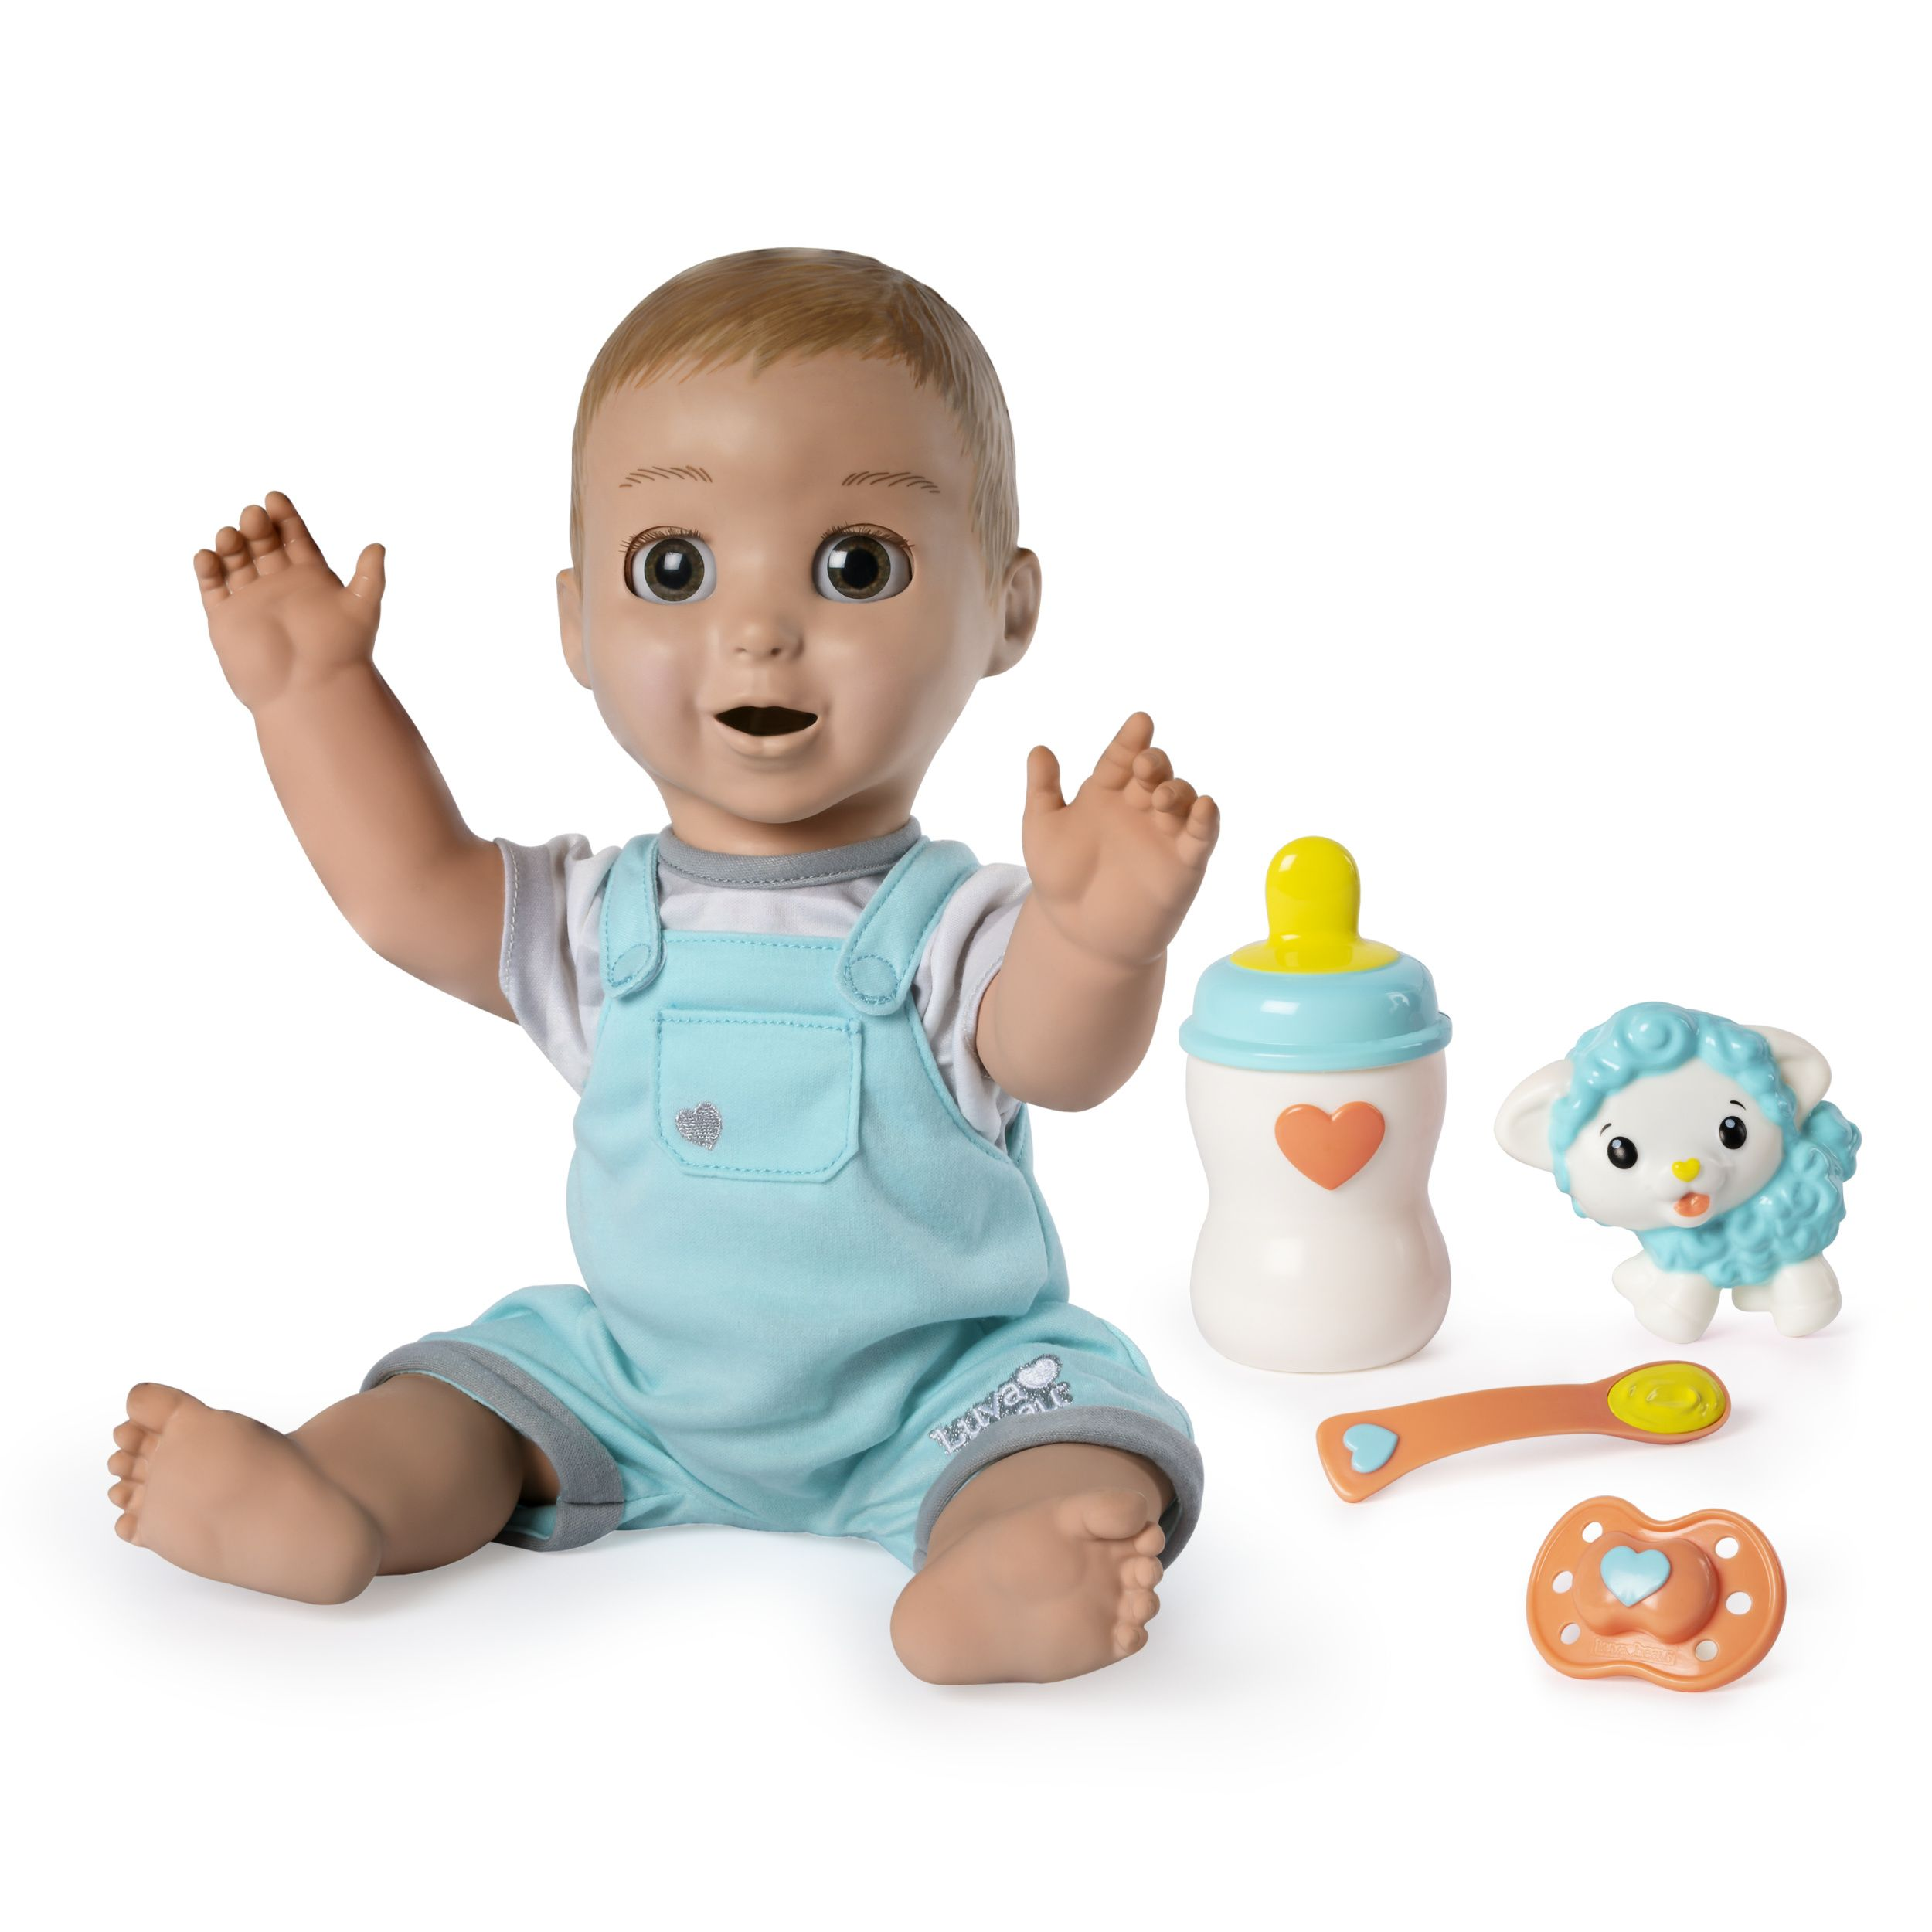 Luvabeau Interactive Baby Doll For Ages 4 And Up Walmart Com Interactive Baby Dolls Interactive Baby Baby Dolls